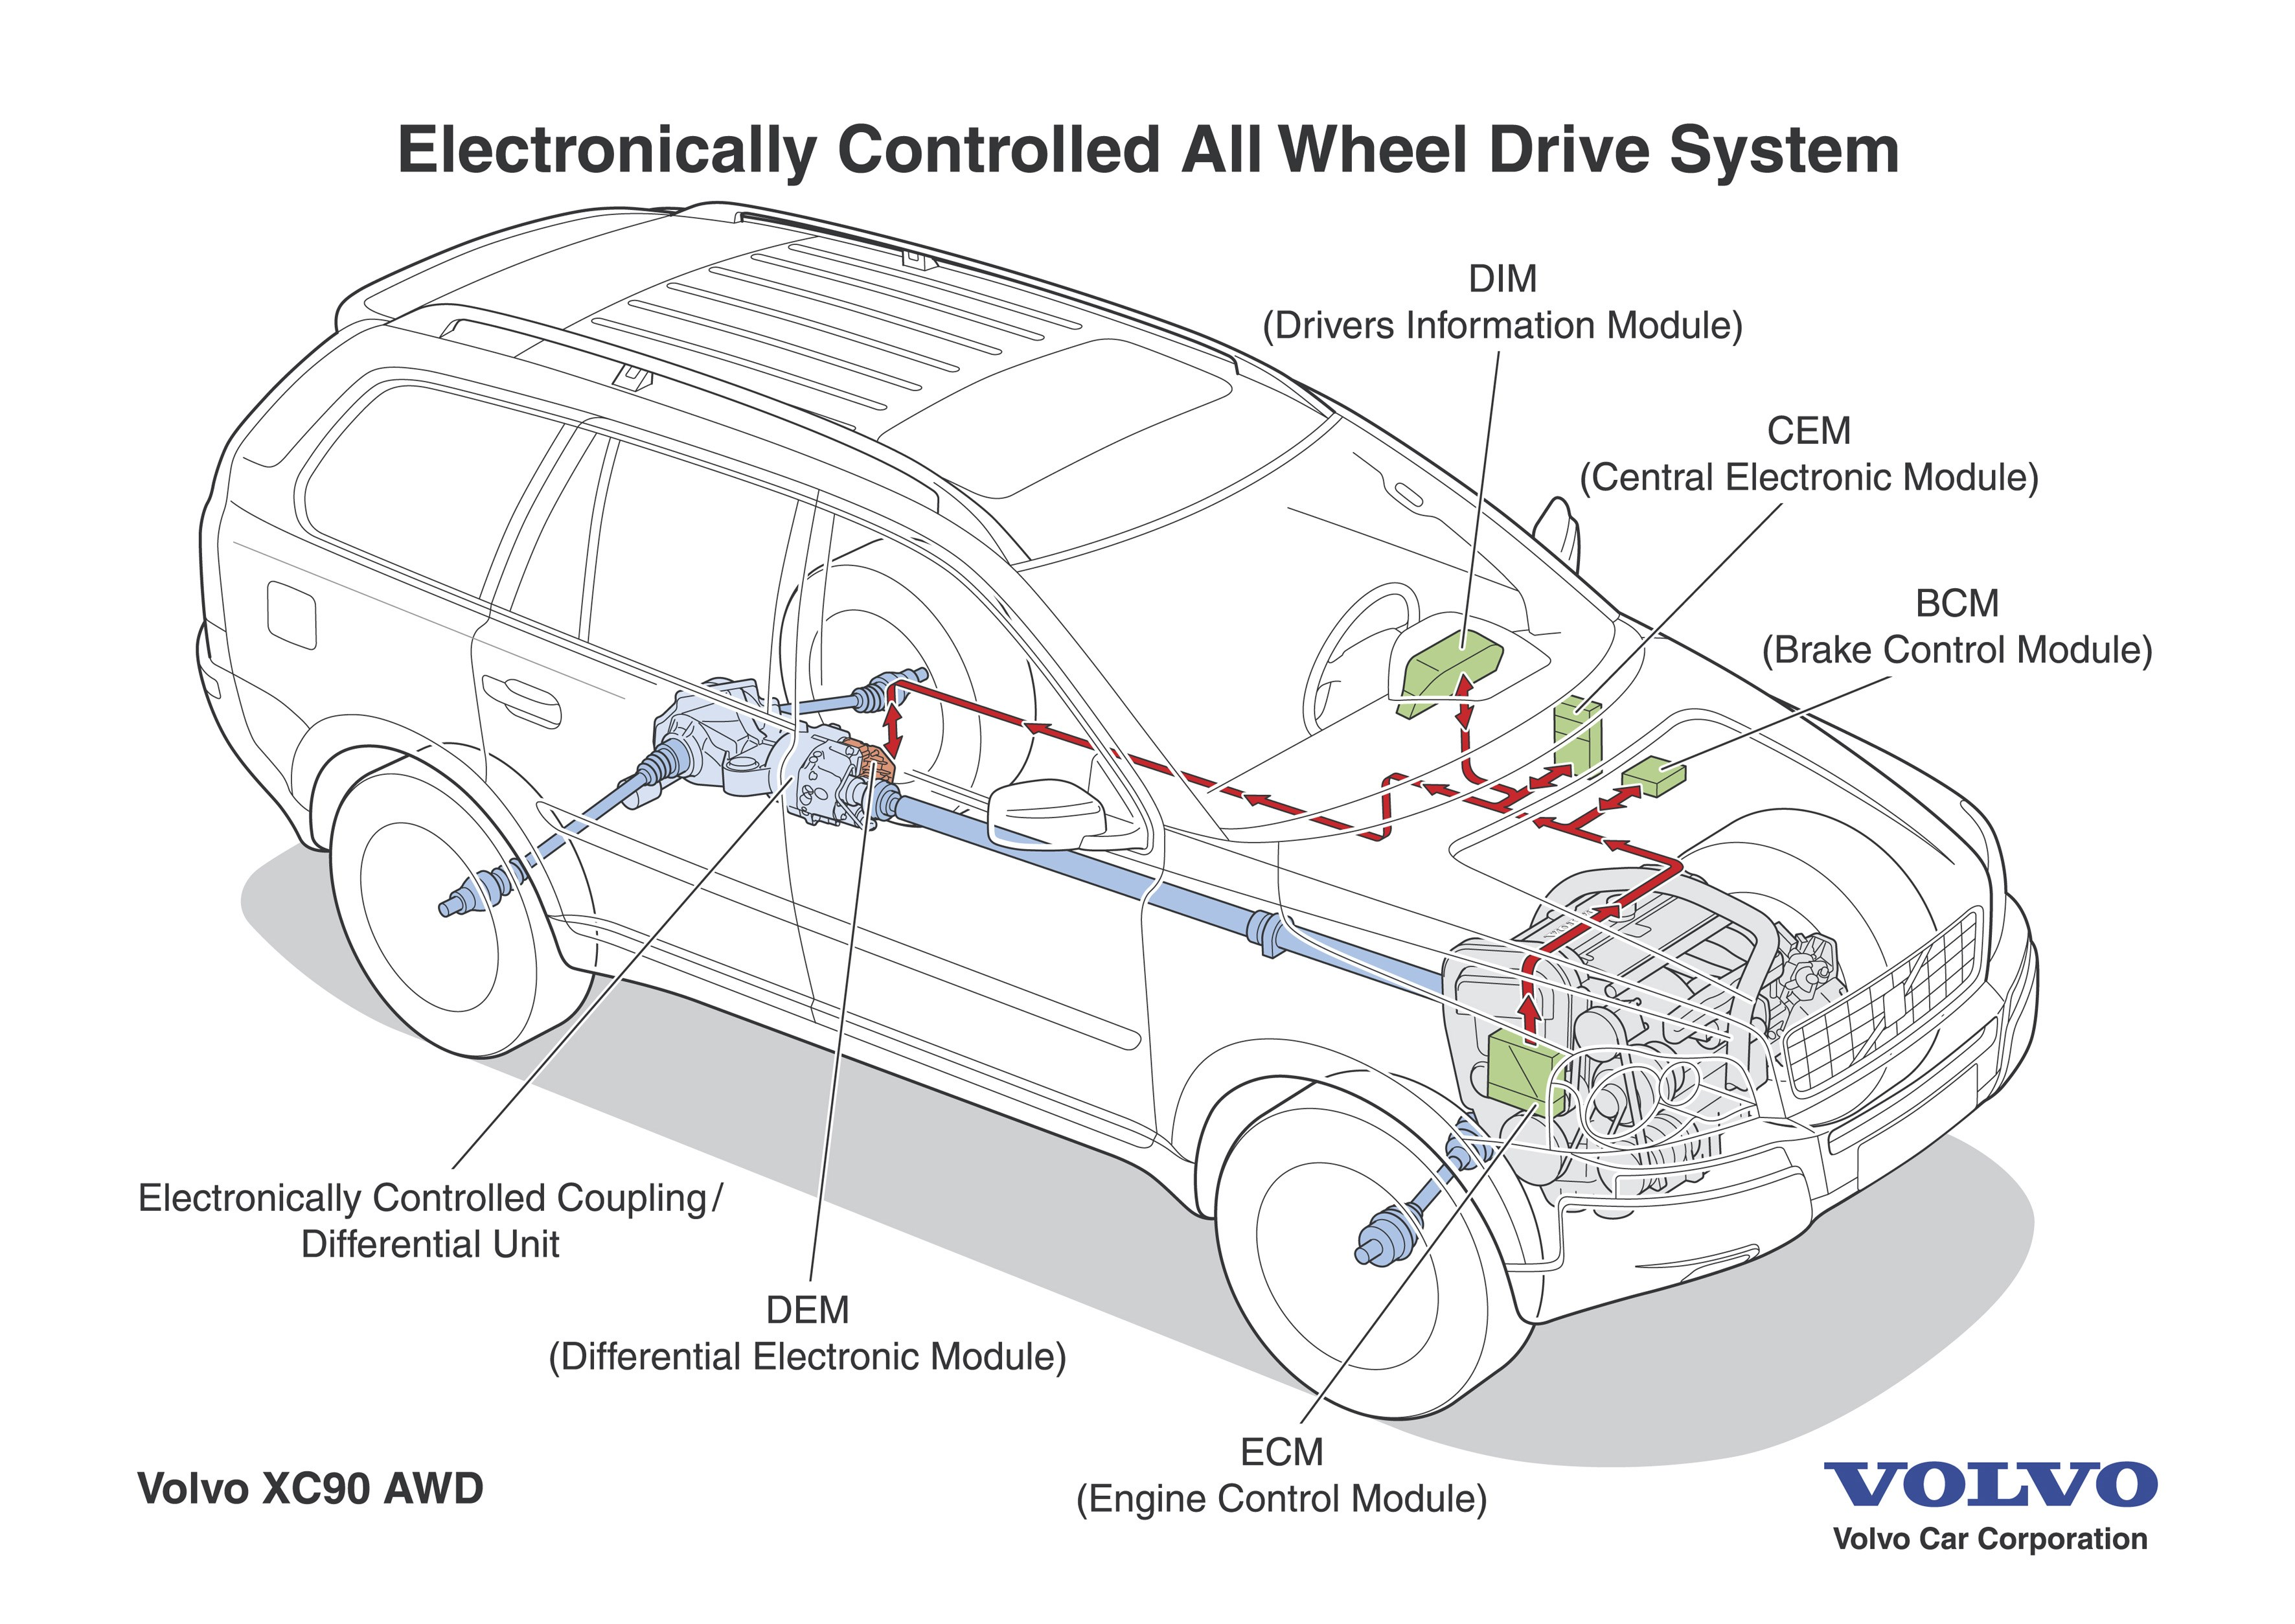 volvo xc90 cem wiring diagram how to wire two amps together 2003 s60 dim fuse location geo metro